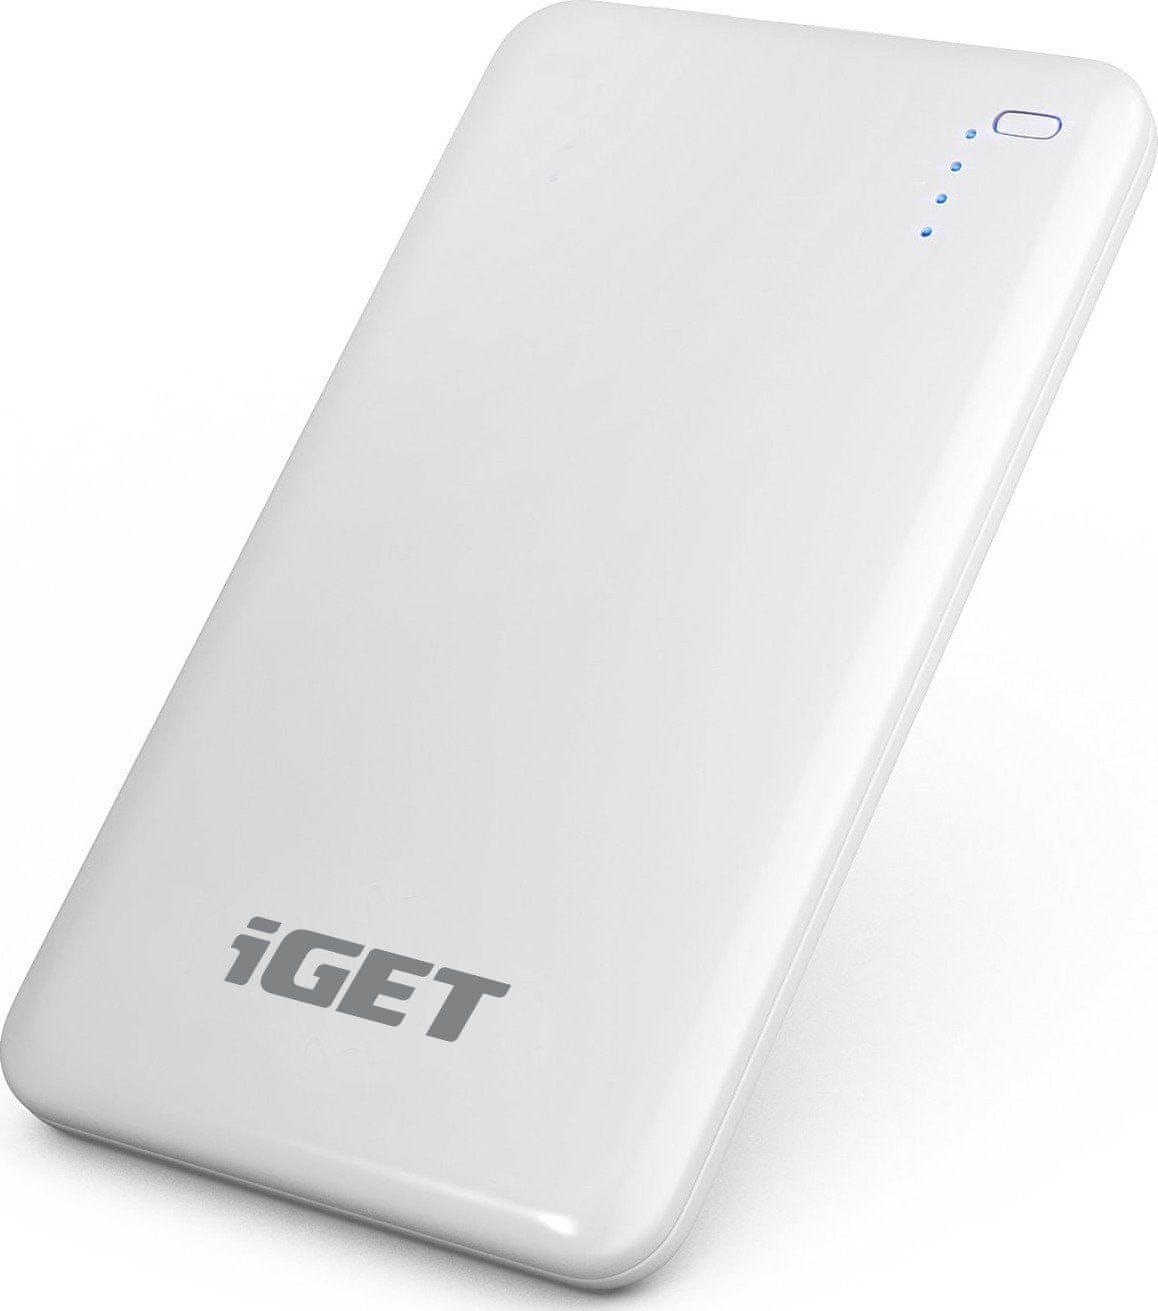 iGet powerbank B-8000